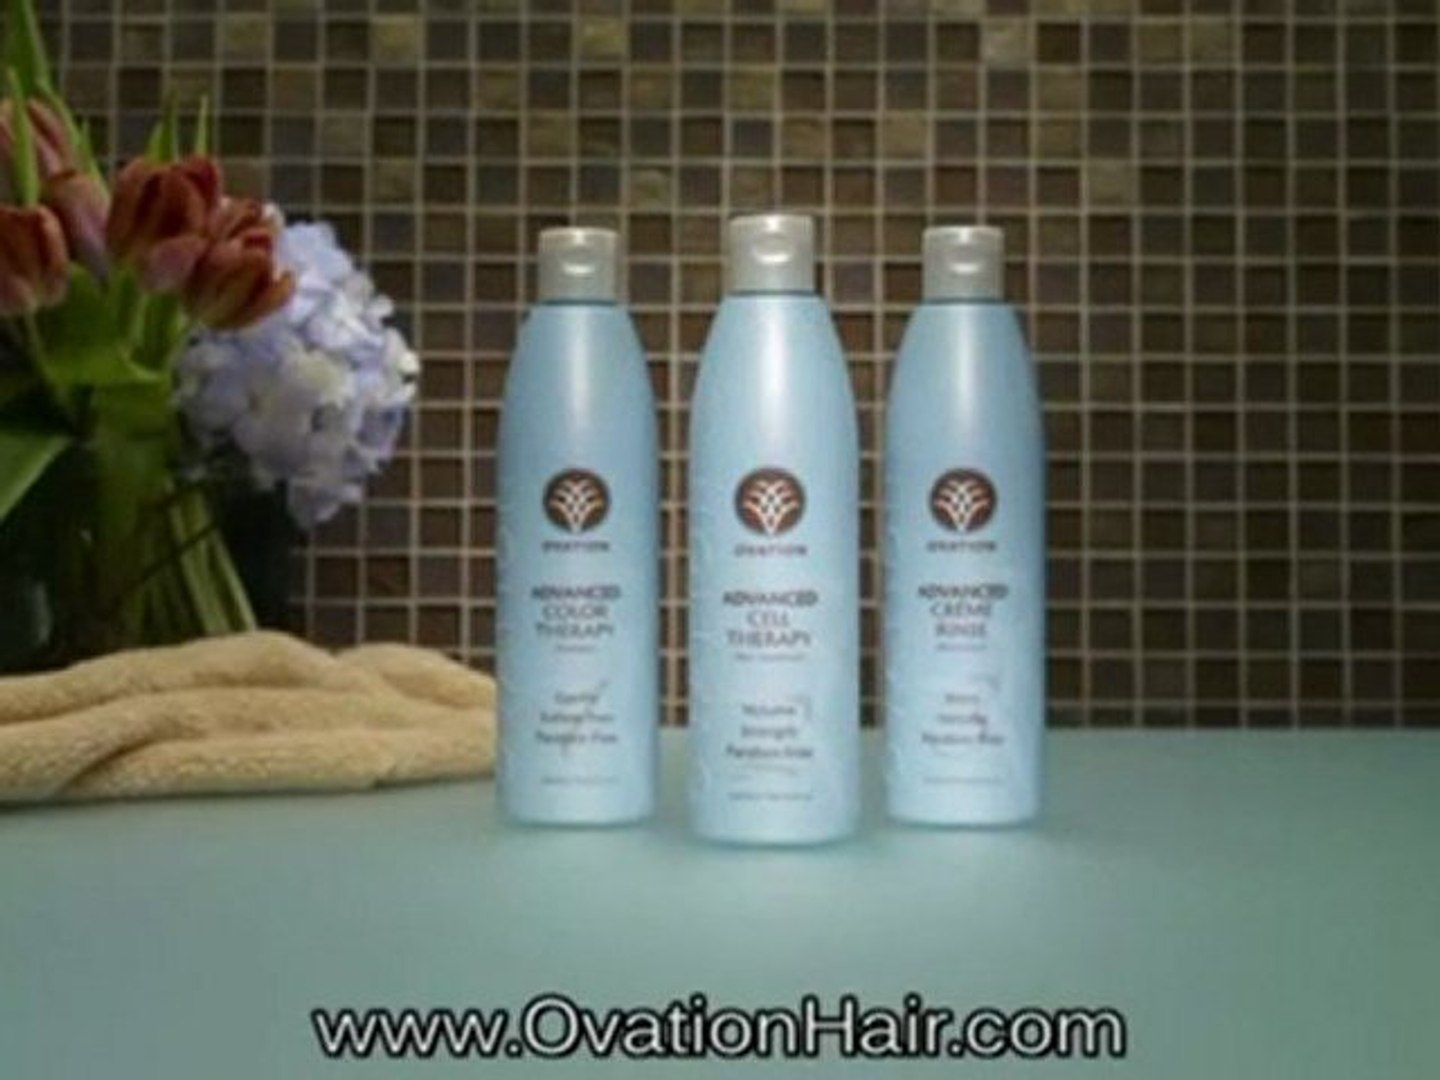 Ovation Hair Products Real Story